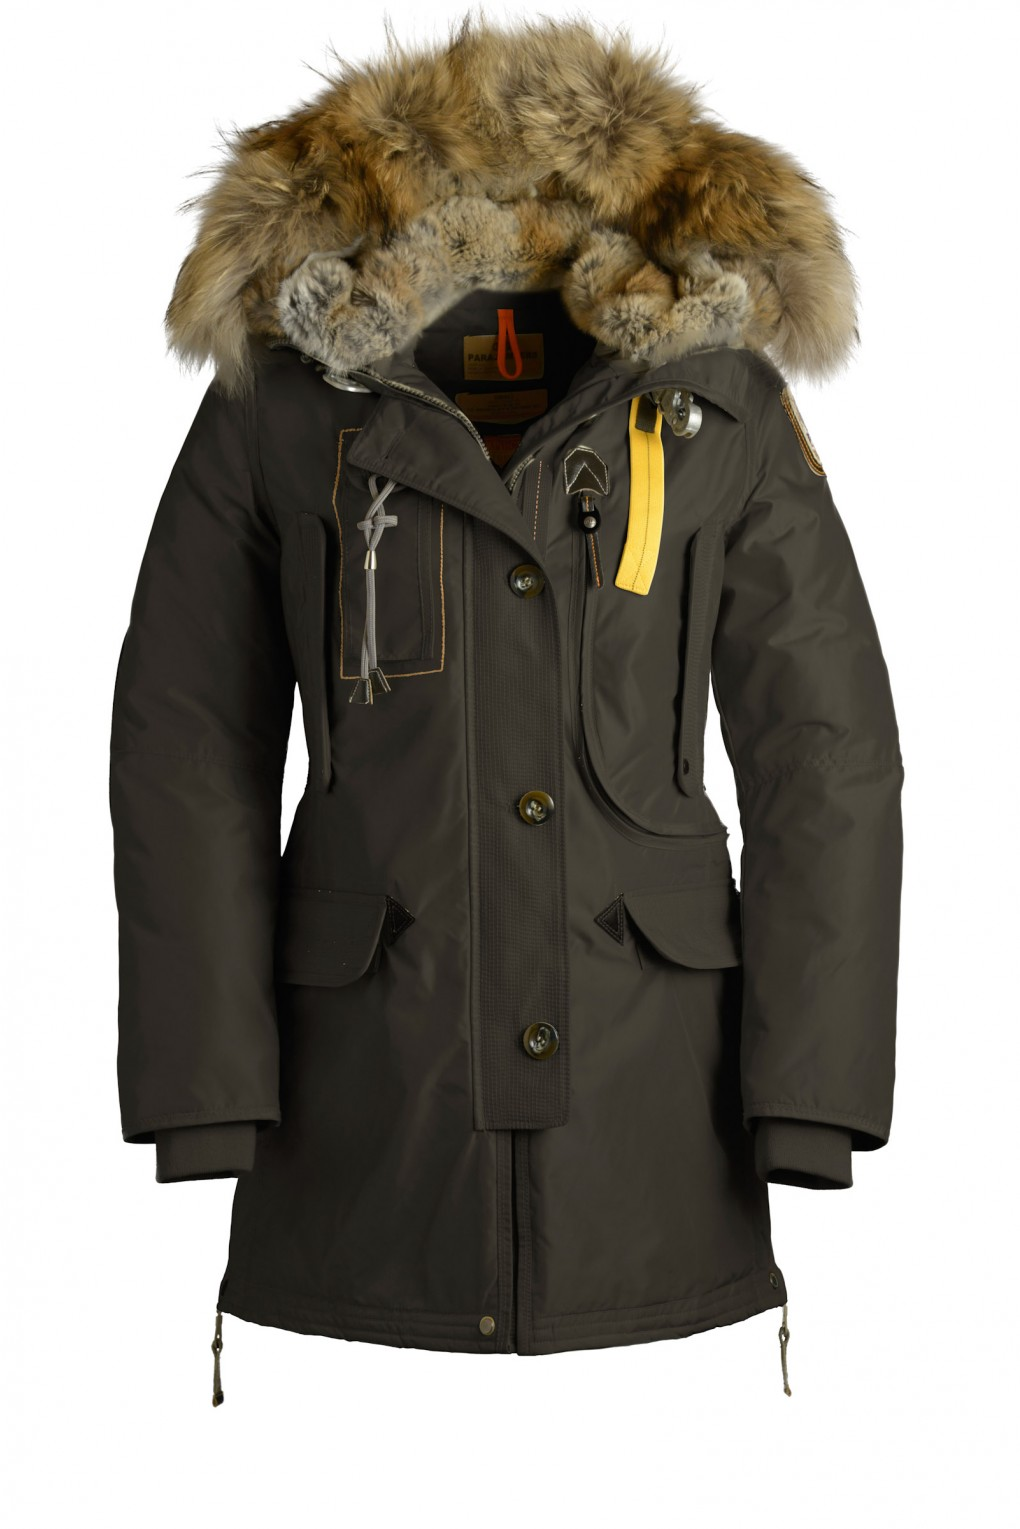 parajumpers KODIAK woman outerwear Olive